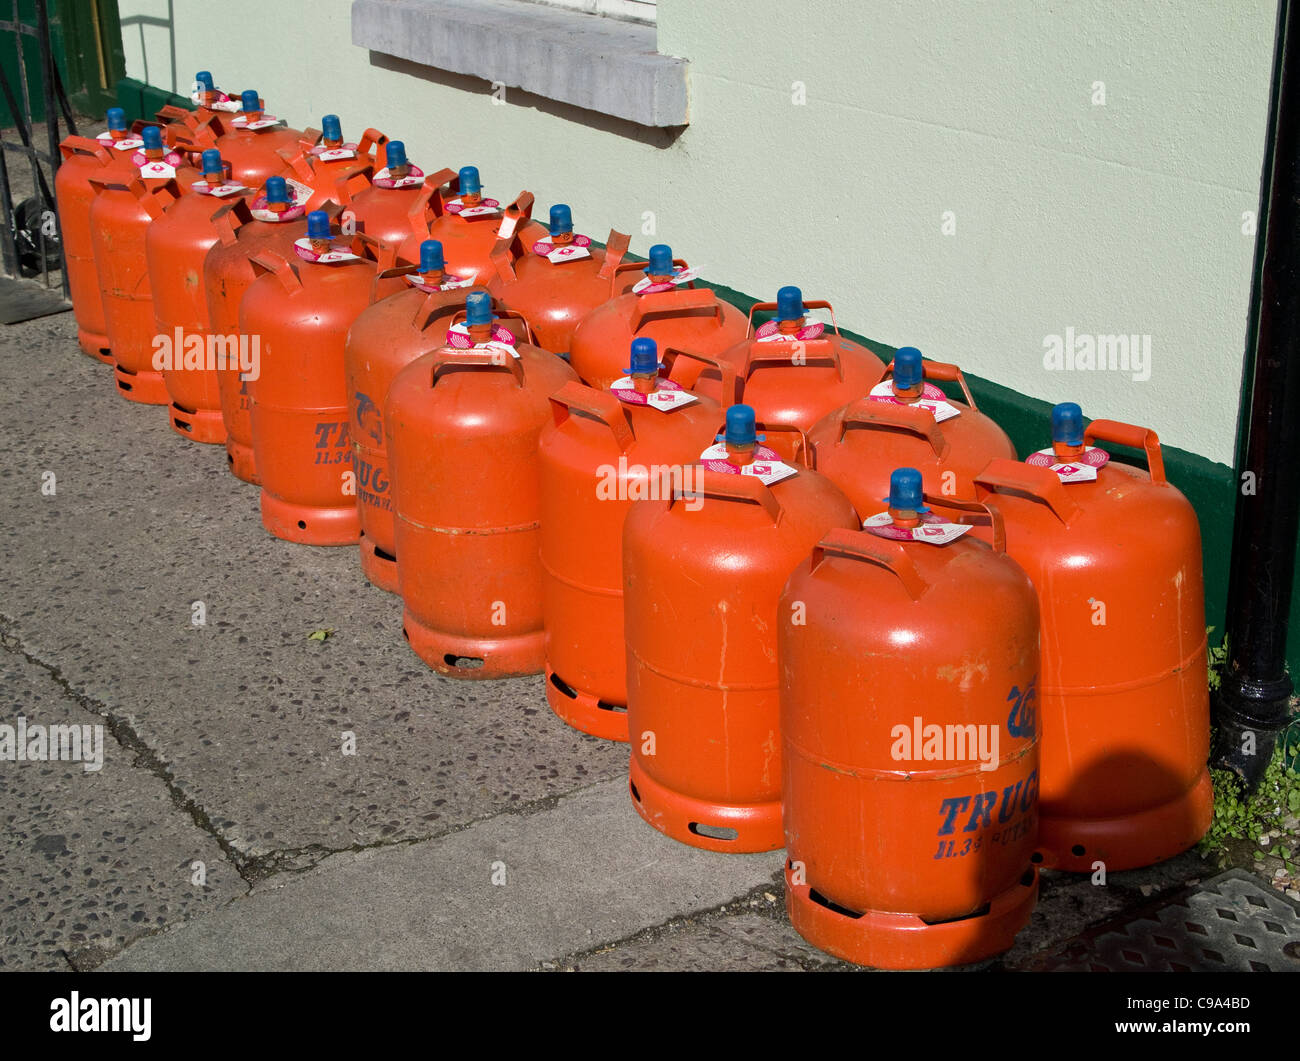 Domestic propane gas canisters on sale outside a hardware shop in Skerries, county Dublin, Ireland - Stock Image